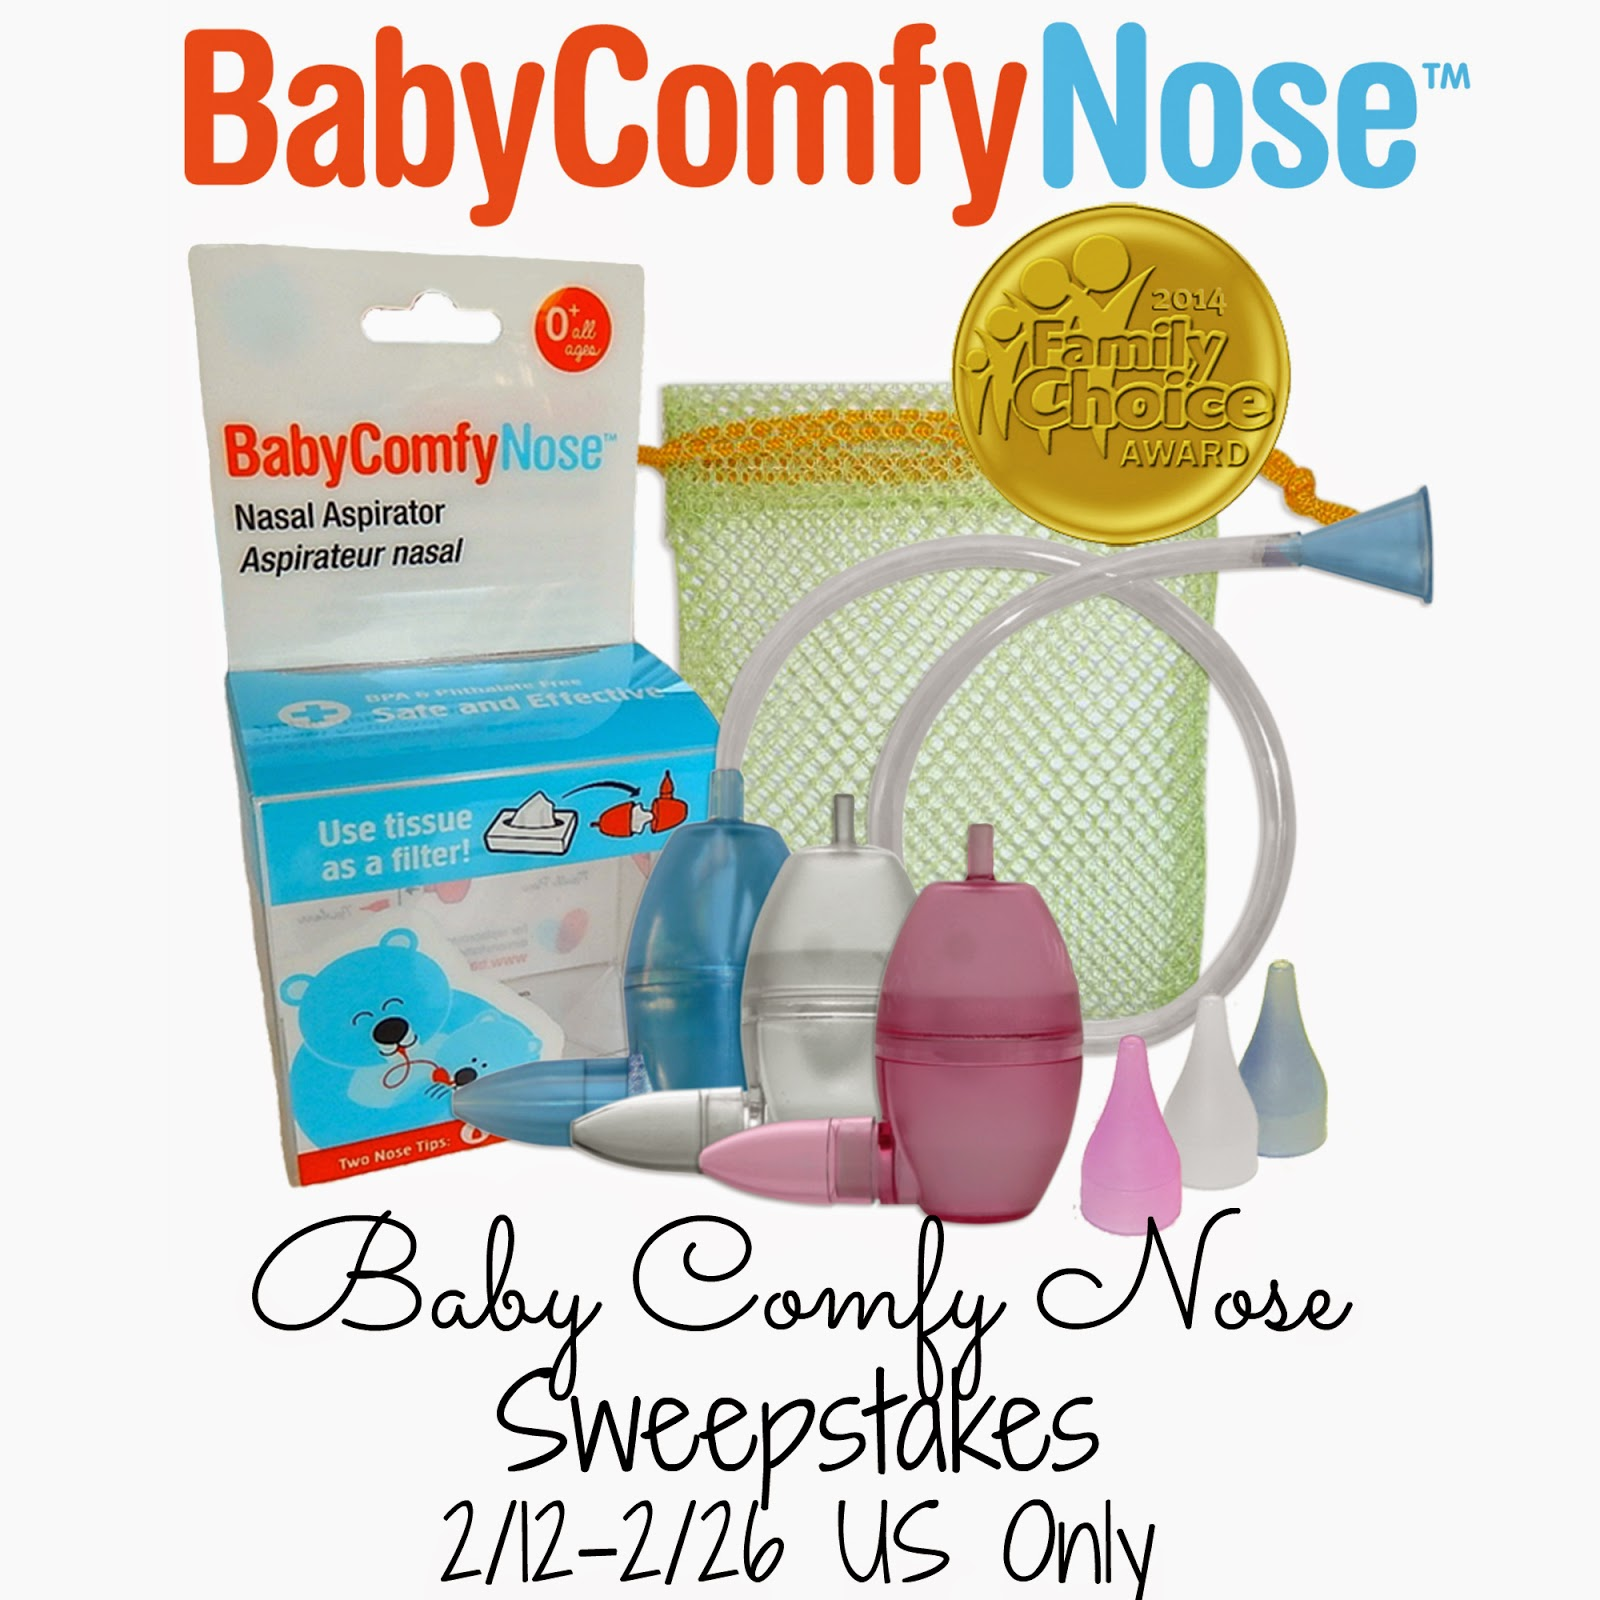 Chaleur Baby Comfy Nose Review And Sweepstakes 2 26